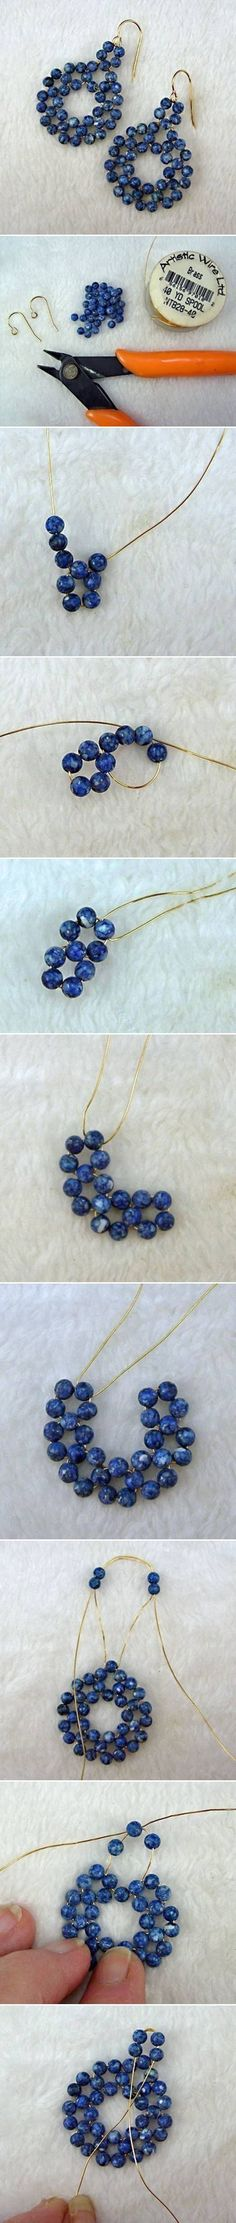 DIY Beads on Wire Earrings